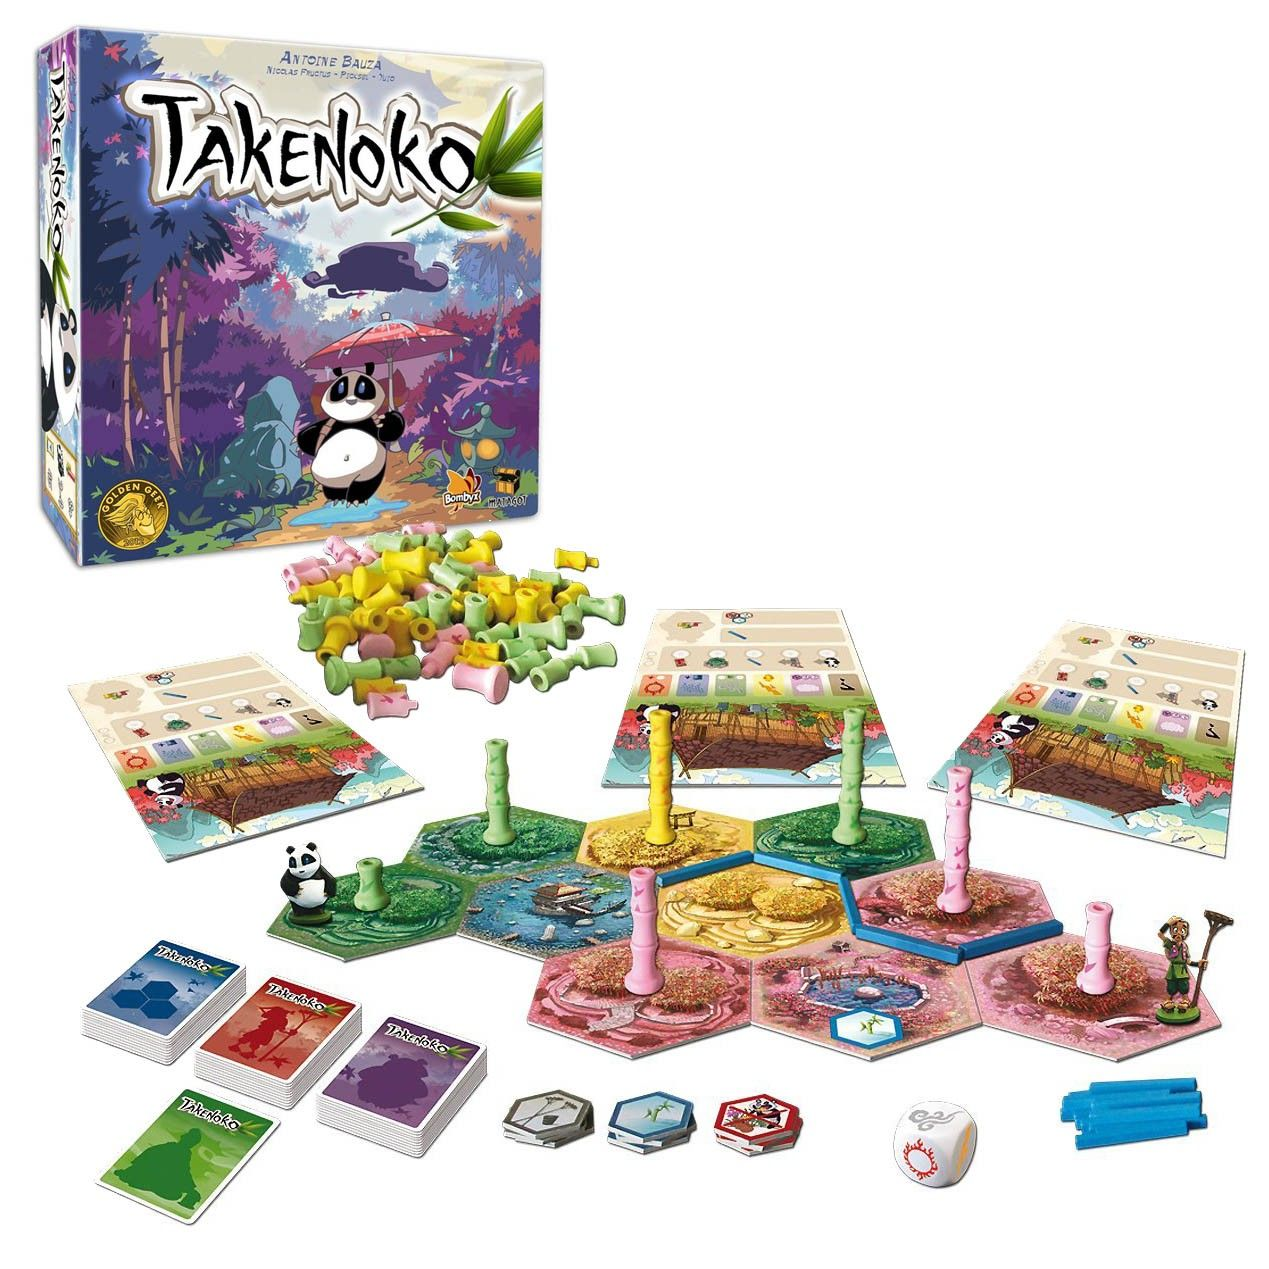 Takenoko Board Game Board games, Games, Date night games